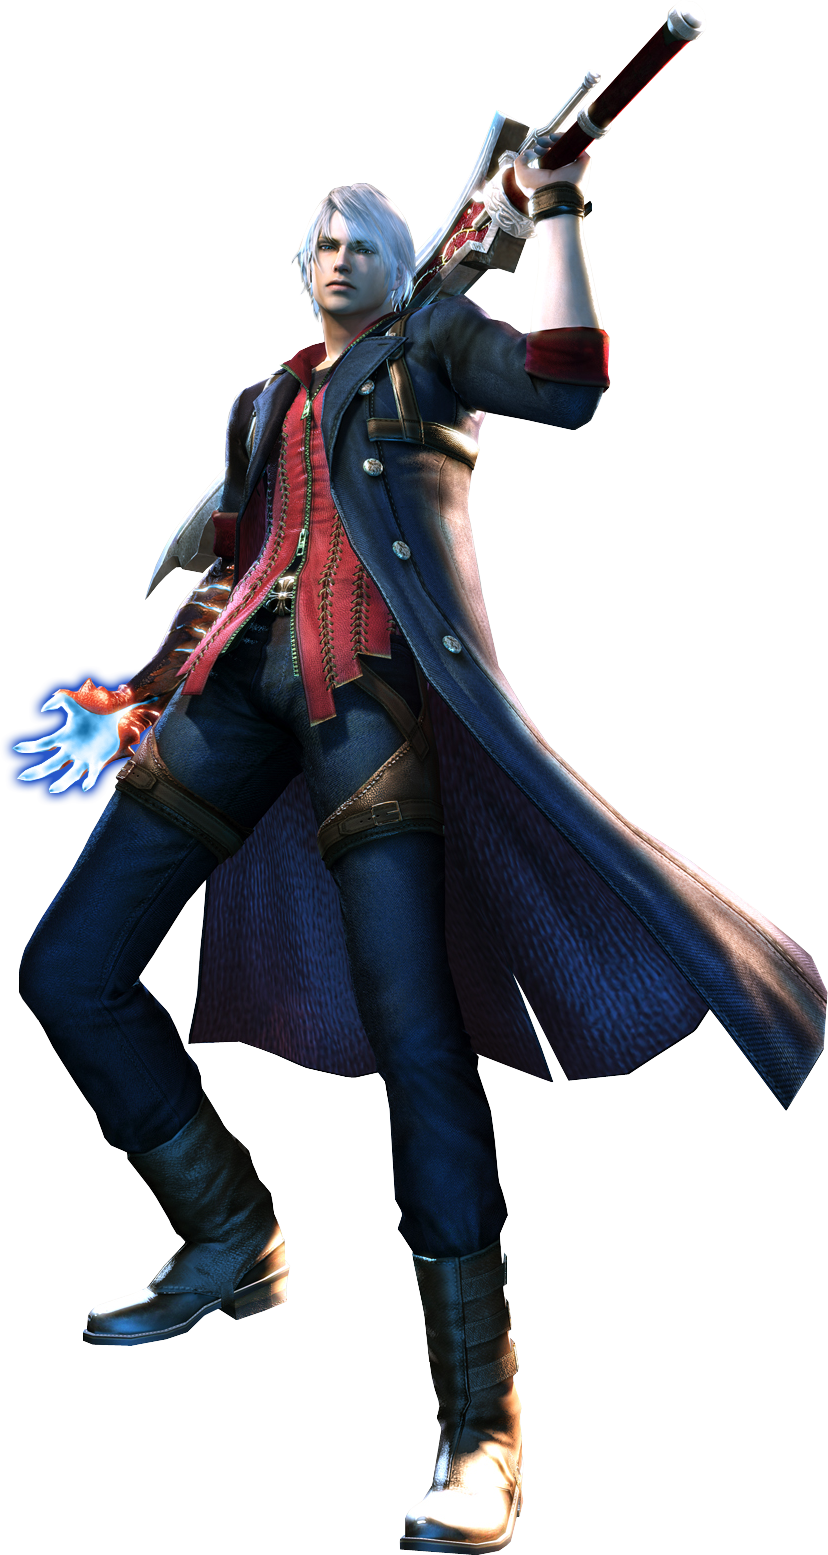 nero devil may cry wiki fandom powered by wikia chinese fortune cookie clipart chinese fortune cookie clipart